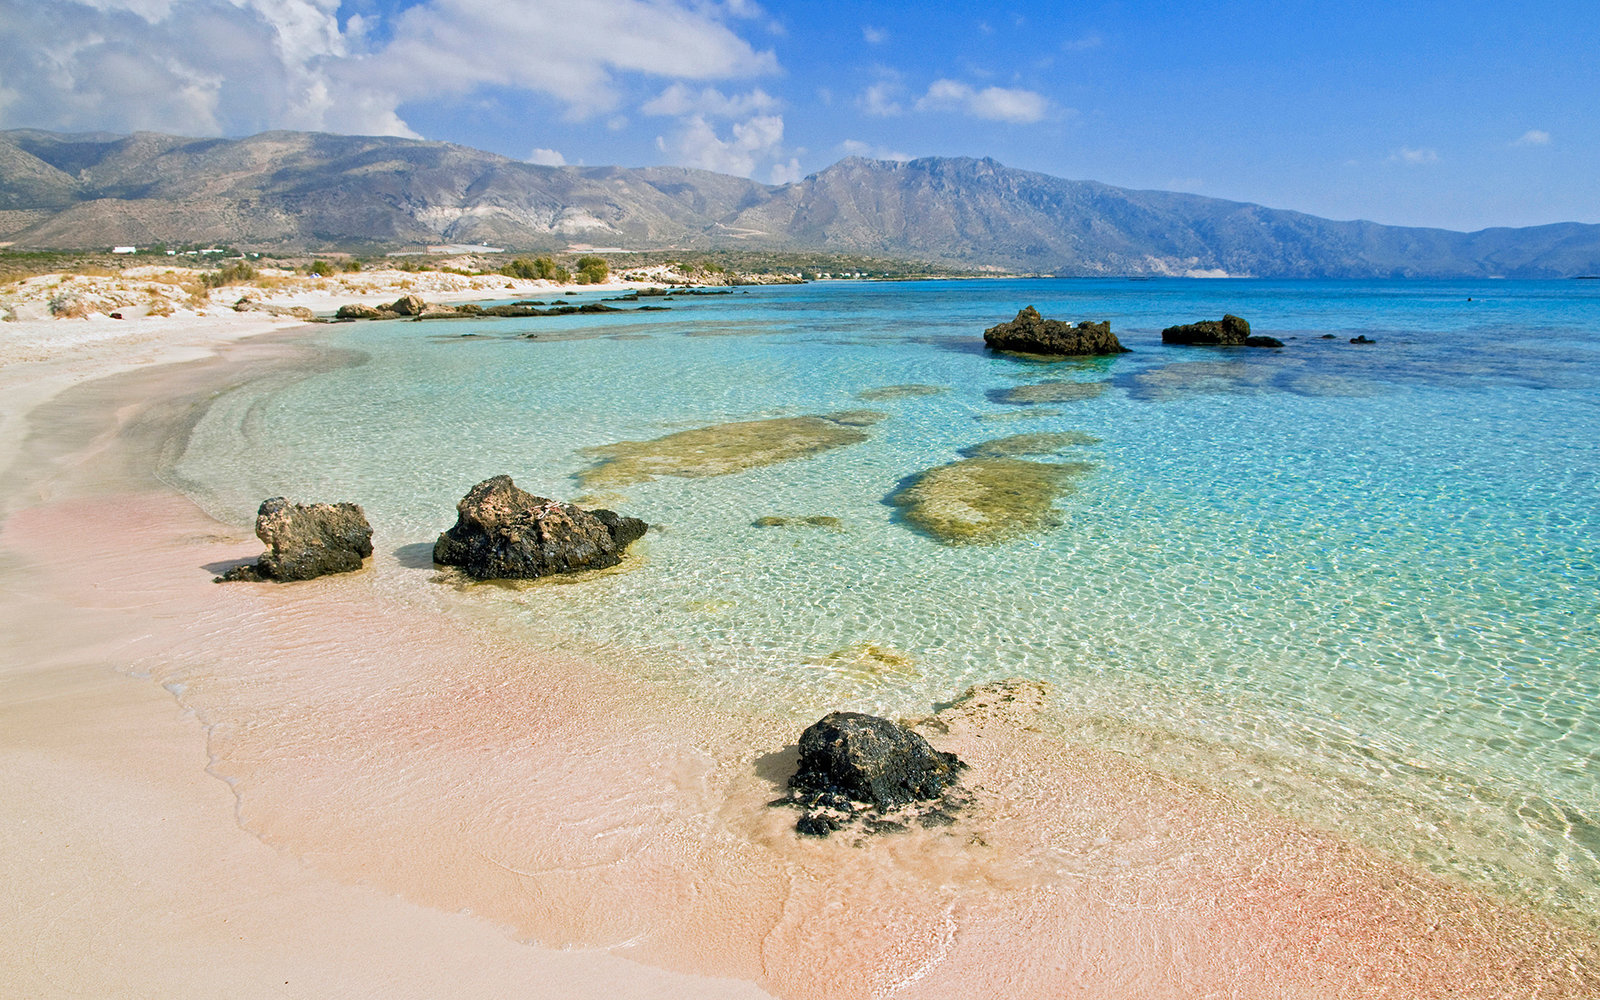 Elafonisi beach, Chania, Crete Island, Greece